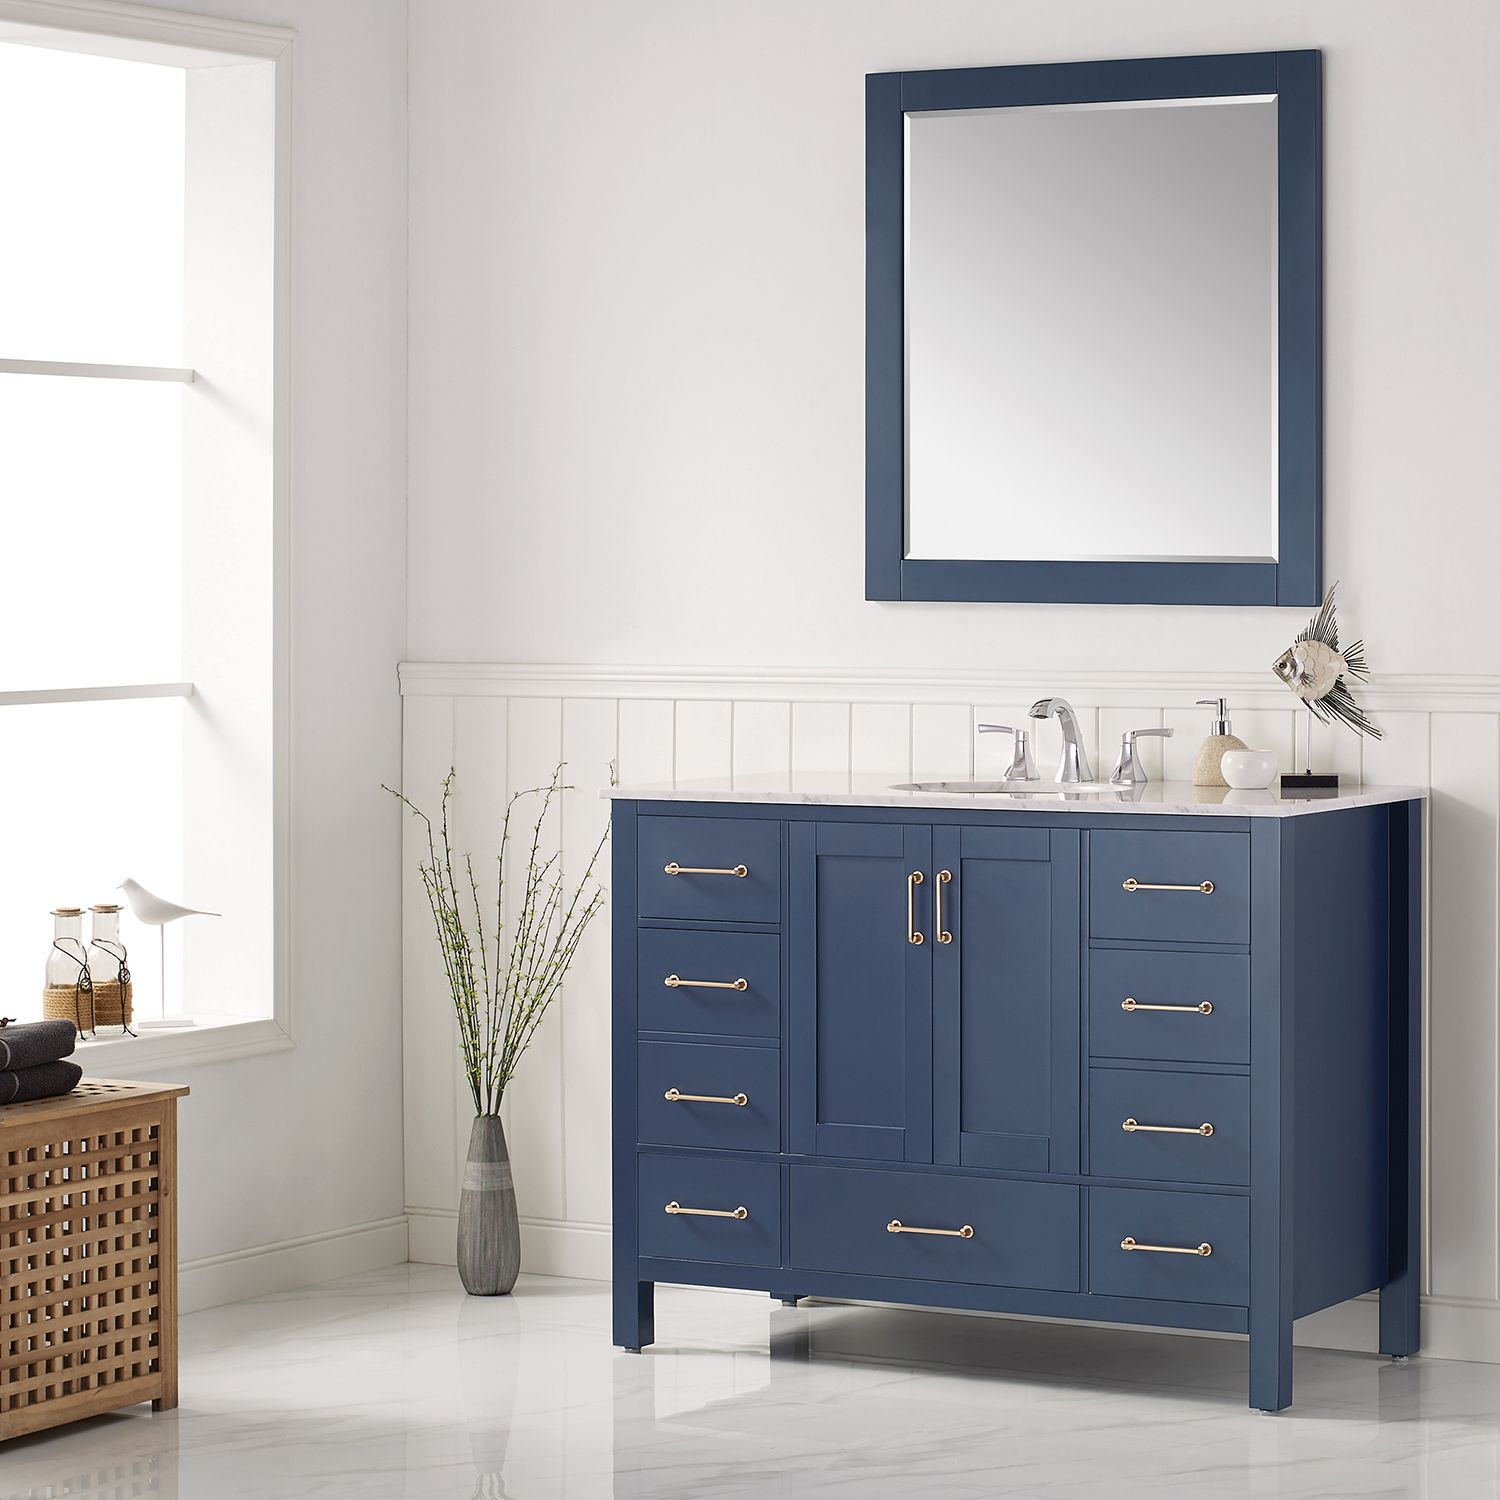 48 Single Vanity In Royal Blue With Carrara White Marble Countertop With Mirror